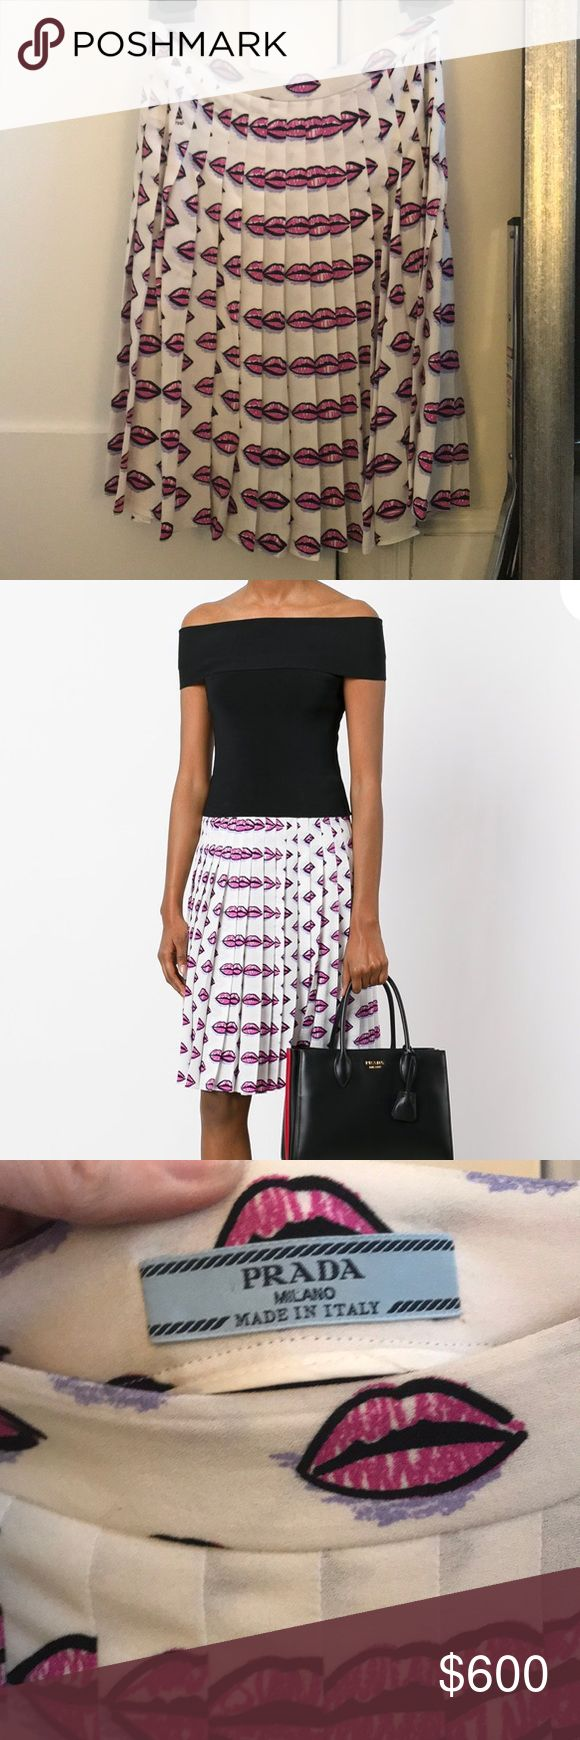 Prada SS17 Lip Print Skirt Prada's AW17 white, pink and purple lip print pleated skirt reimagines the iconic print first seen in the Spring 2000 collection. Prada prints have become recognizable and collectible so it's a great investment piece (Vogue included this print in a story about Prada's best collectibles). Size 38 Italian fits size 2 US. Light viscose fabric. Very good condition except subtle pale coffee mark as pictured (was just dry cleaned so it's faded but probably needs a little…